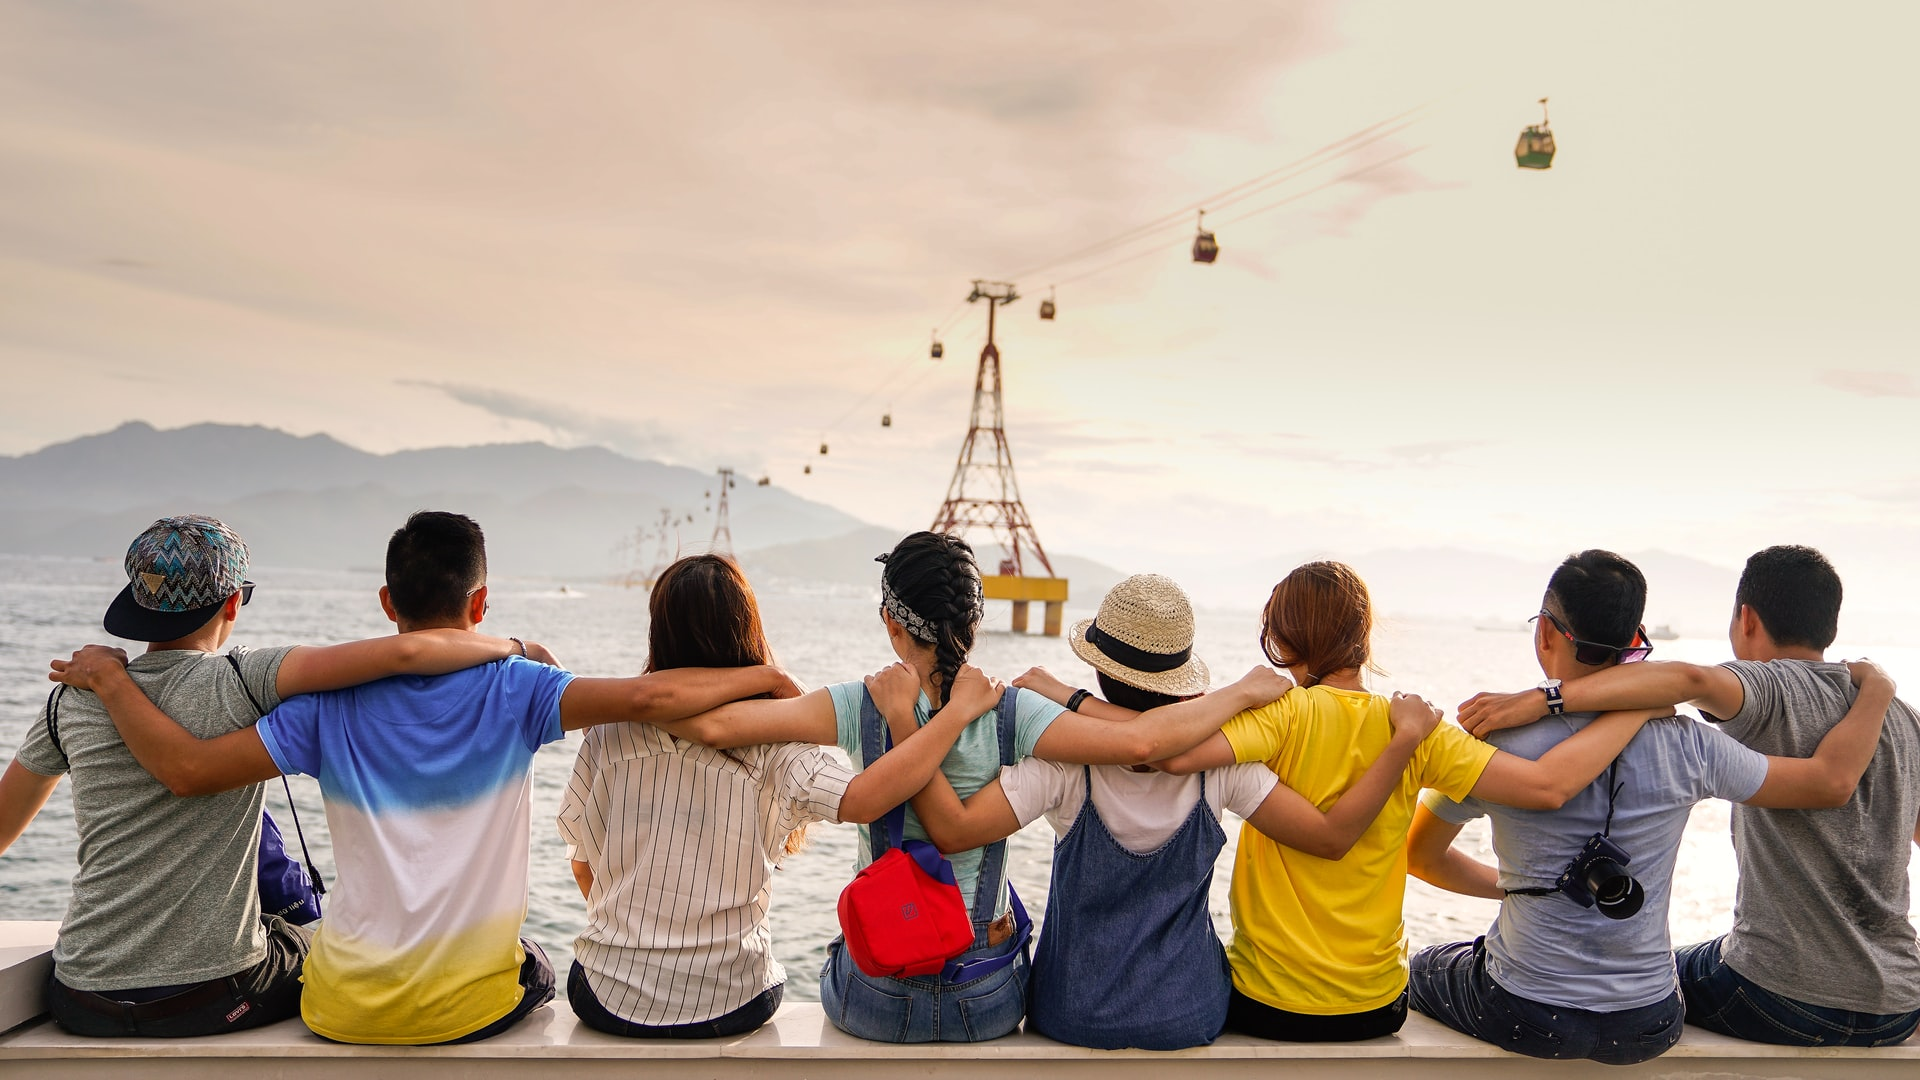 Research: 5 Ways Friendships Help Us